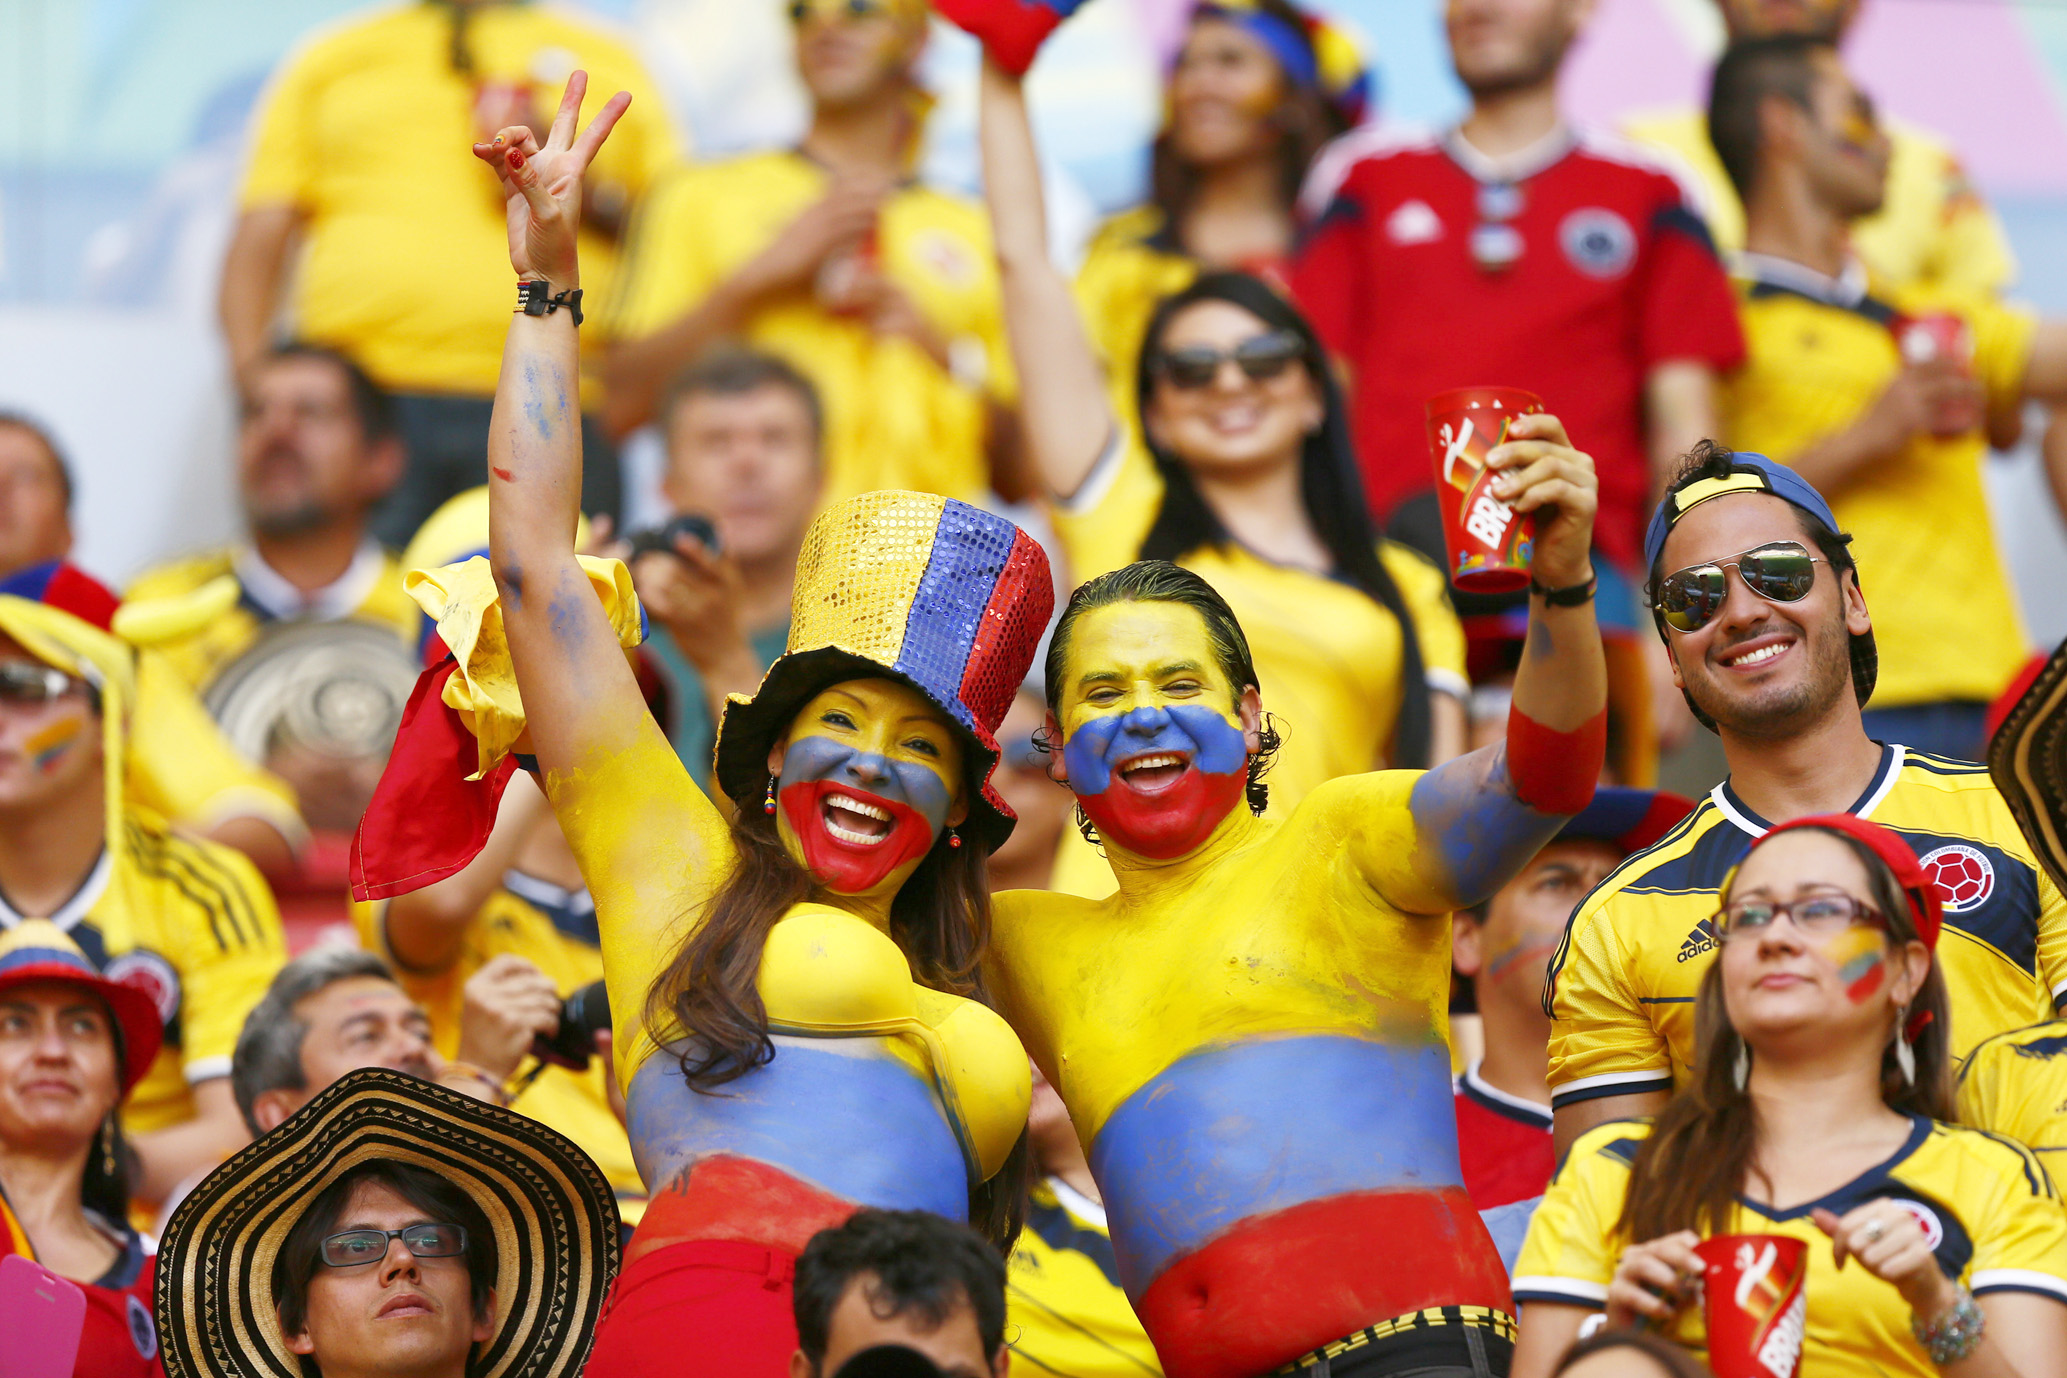 MARC ILES' WORLD CUP SIDESHOW: Waving fans are a big TV turn-of